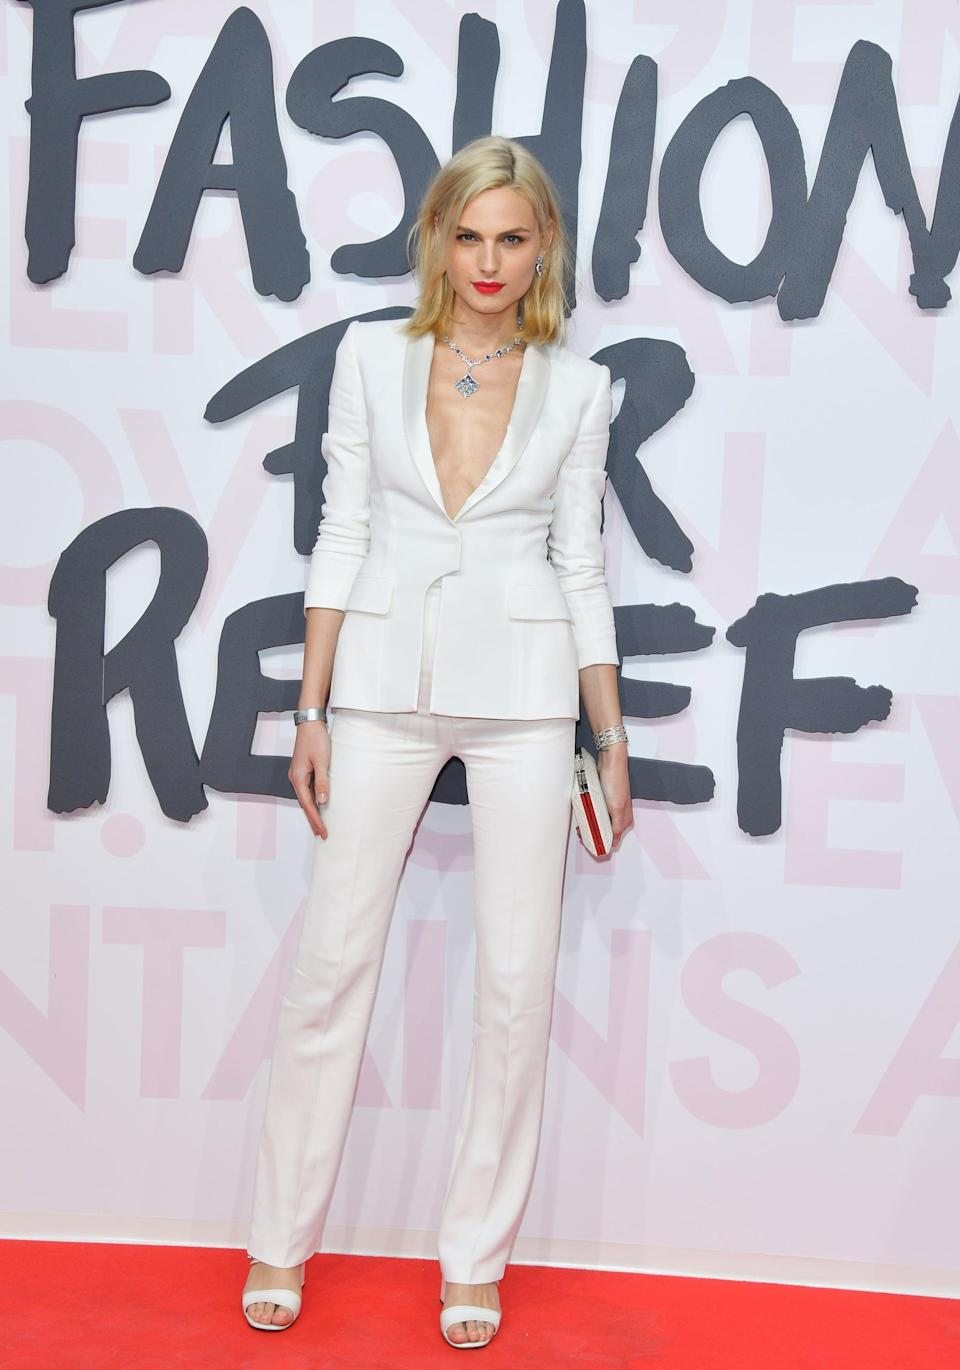 """<p>Andreja has been making waves in the fashion industry since landing an international campaign for Gaultier before she transitioned. While Andreja used to model both men's and women's lines, <a href=""""https://www.popsugar.com/fashion/photo-gallery/35729612/image/35729725/Have-you-felt-pigeonholed-certain-roles-industry-because"""" class=""""link rapid-noclick-resp"""" rel=""""nofollow noopener"""" target=""""_blank"""" data-ylk=""""slk:she has since stated she will be modeling as a woman"""">she has since stated she will be modeling as a woman</a>. In 2018, she made her film debut in the movie <strong>The Girl in the Spider's Web</strong>.</p>"""